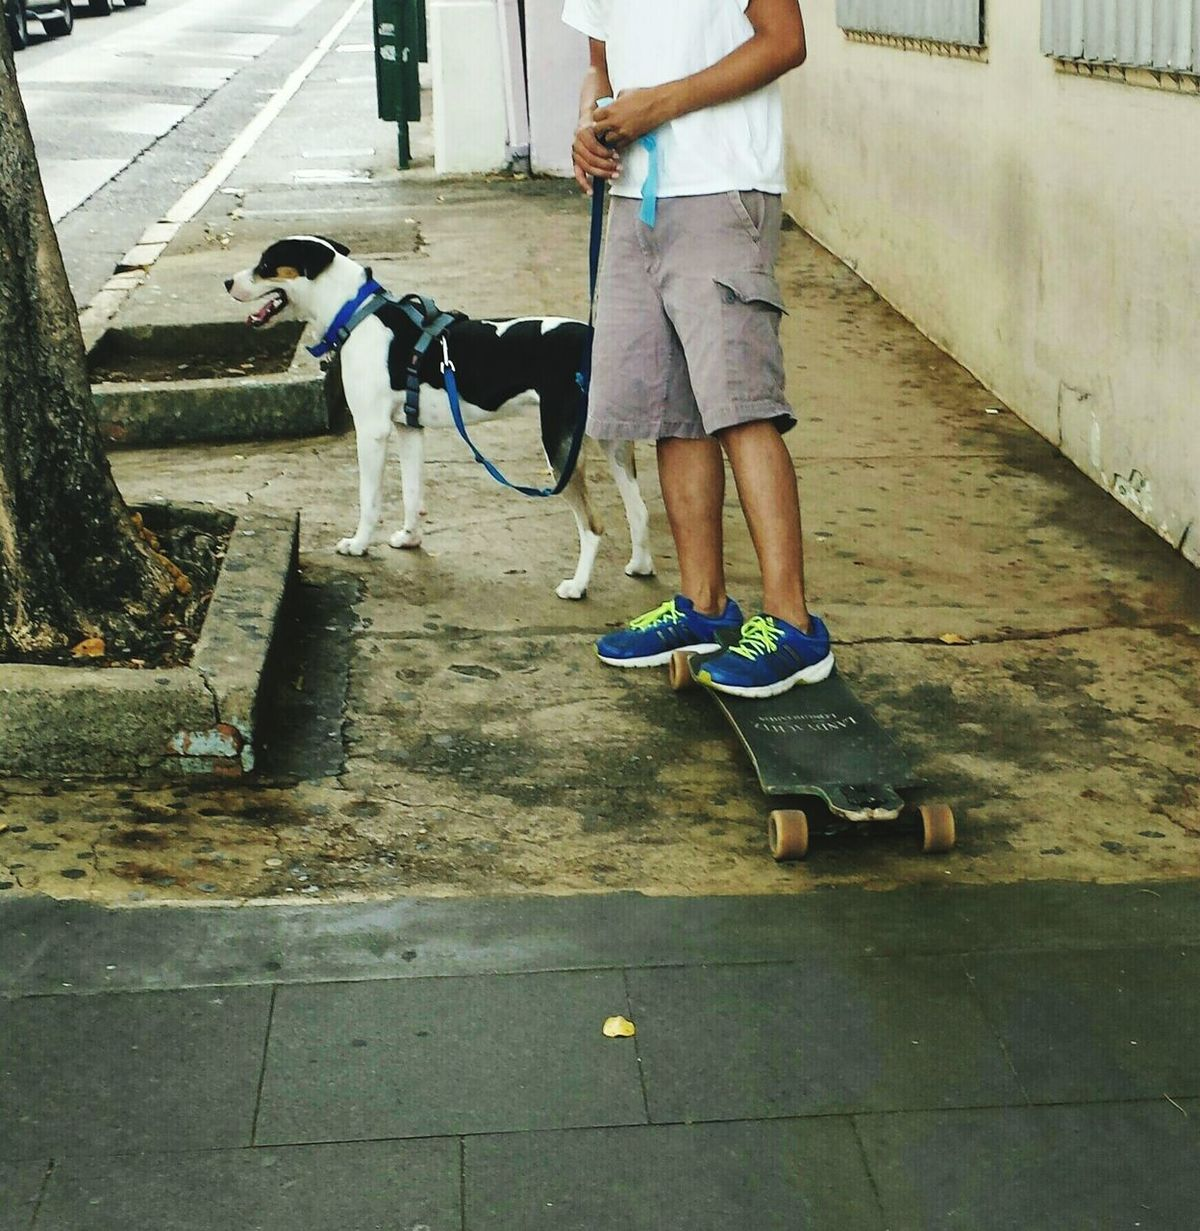 Urban Sports I Love My City Summer Views Streetphotography Captured Moment Skateboarding Summer Dogs Shoespotrait F2 Urban Lifestyle Adventure Buddies Mix Yourself A Good Time